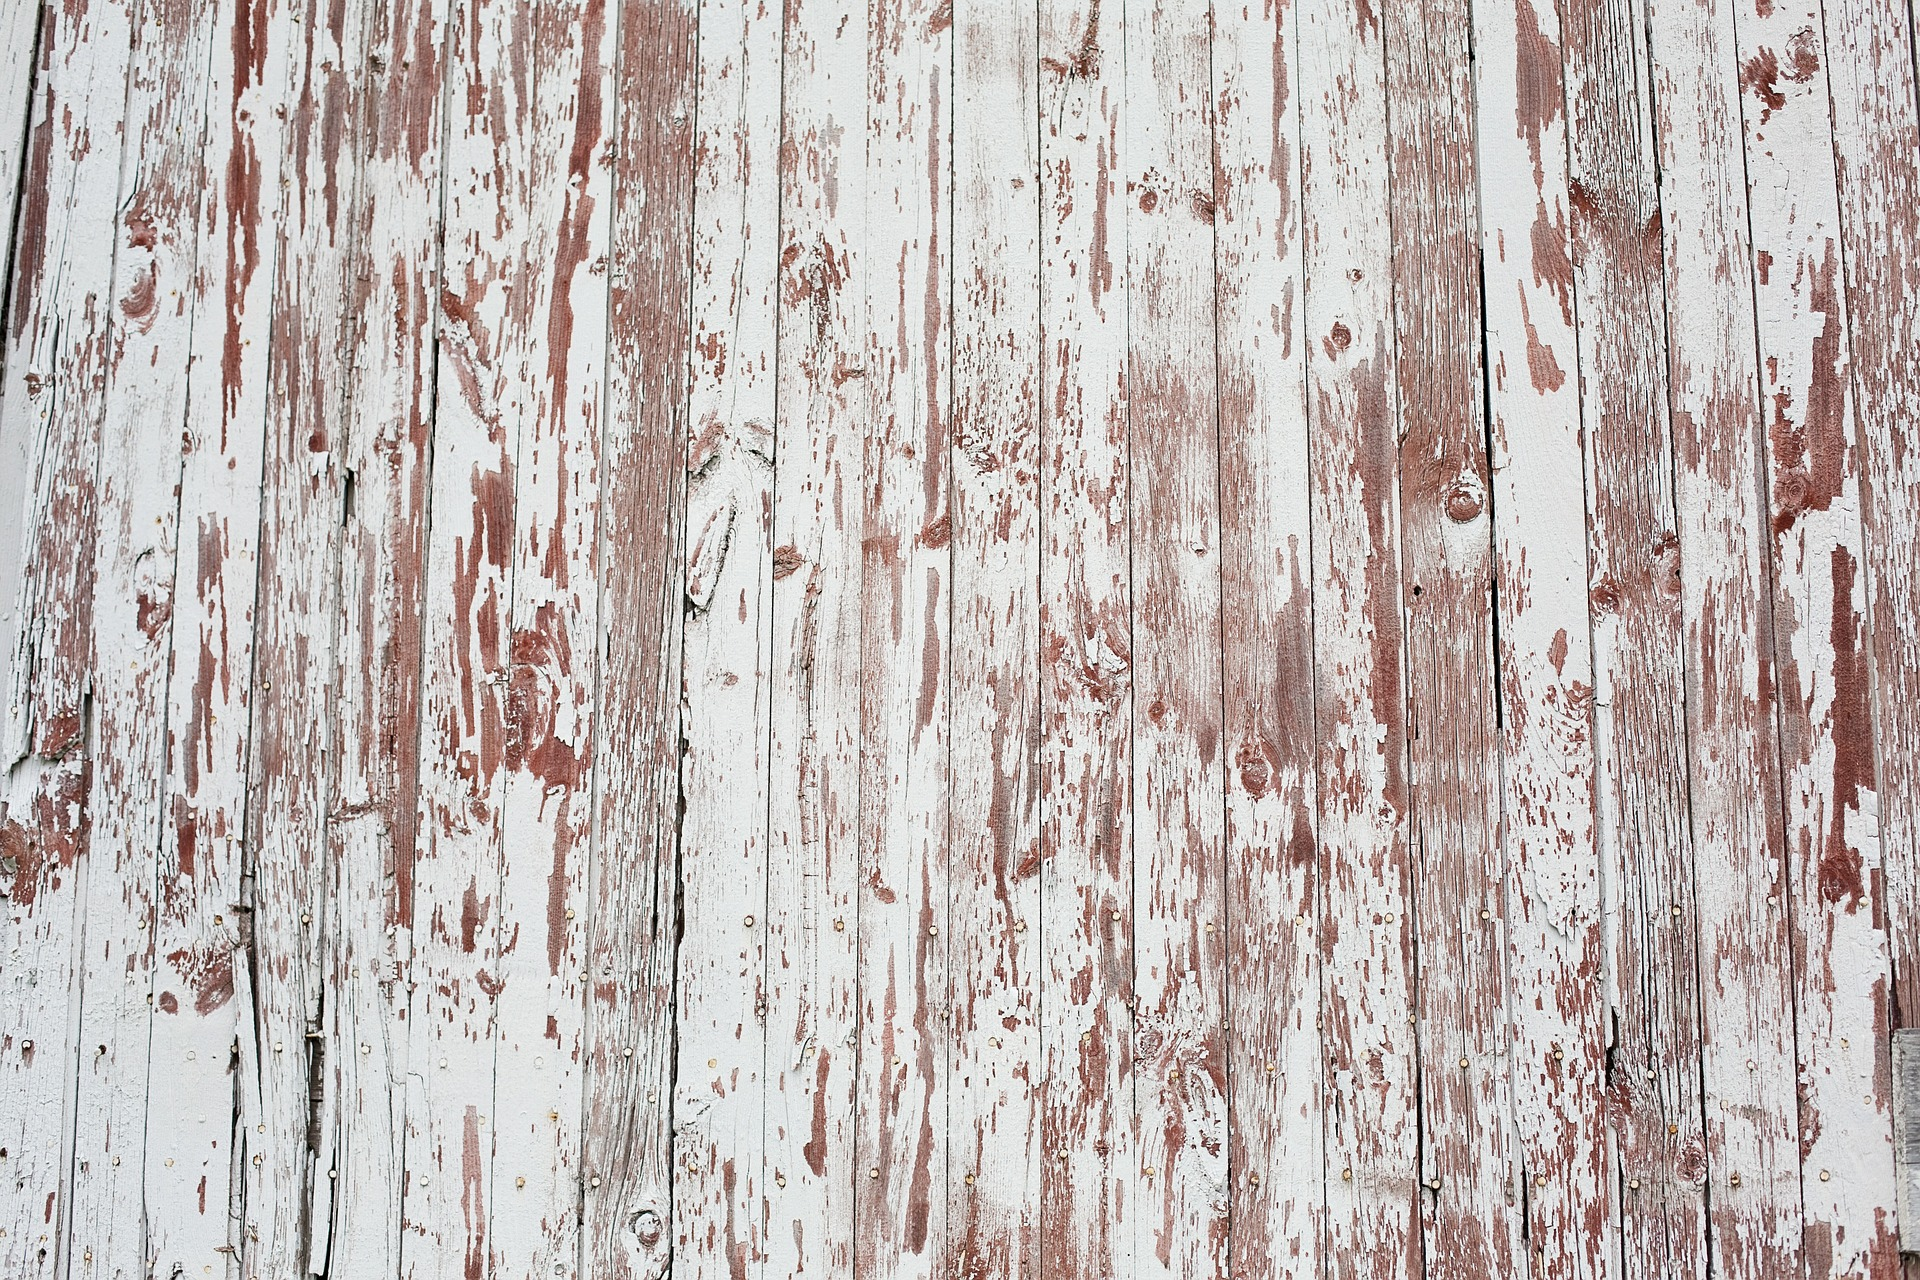 Wooden Texture, Wooden, Wood, Texture, Design, HQ Photo